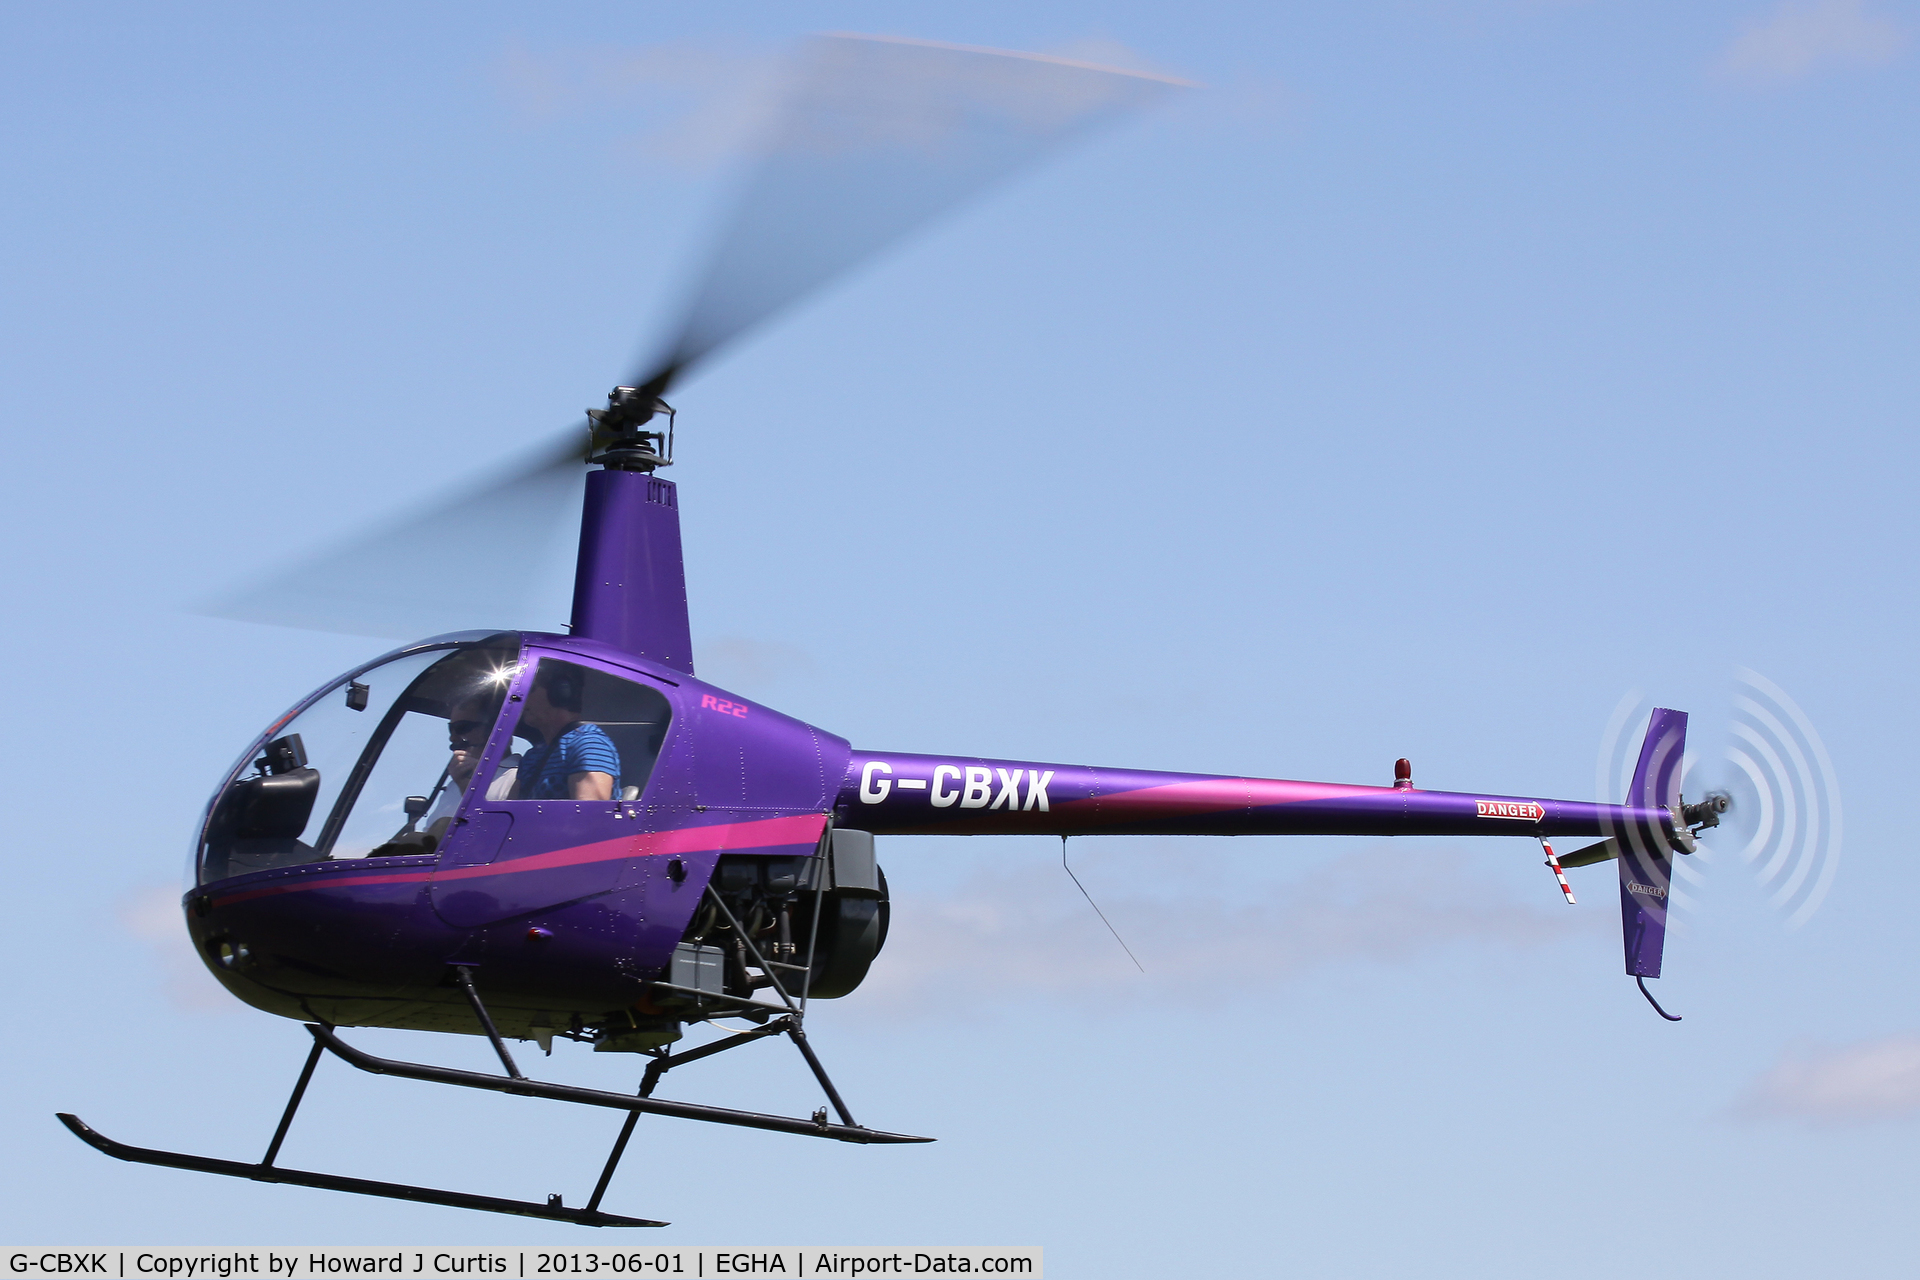 G-CBXK, 1993 Robinson R22 Mariner C/N 2302M, Privately owned.